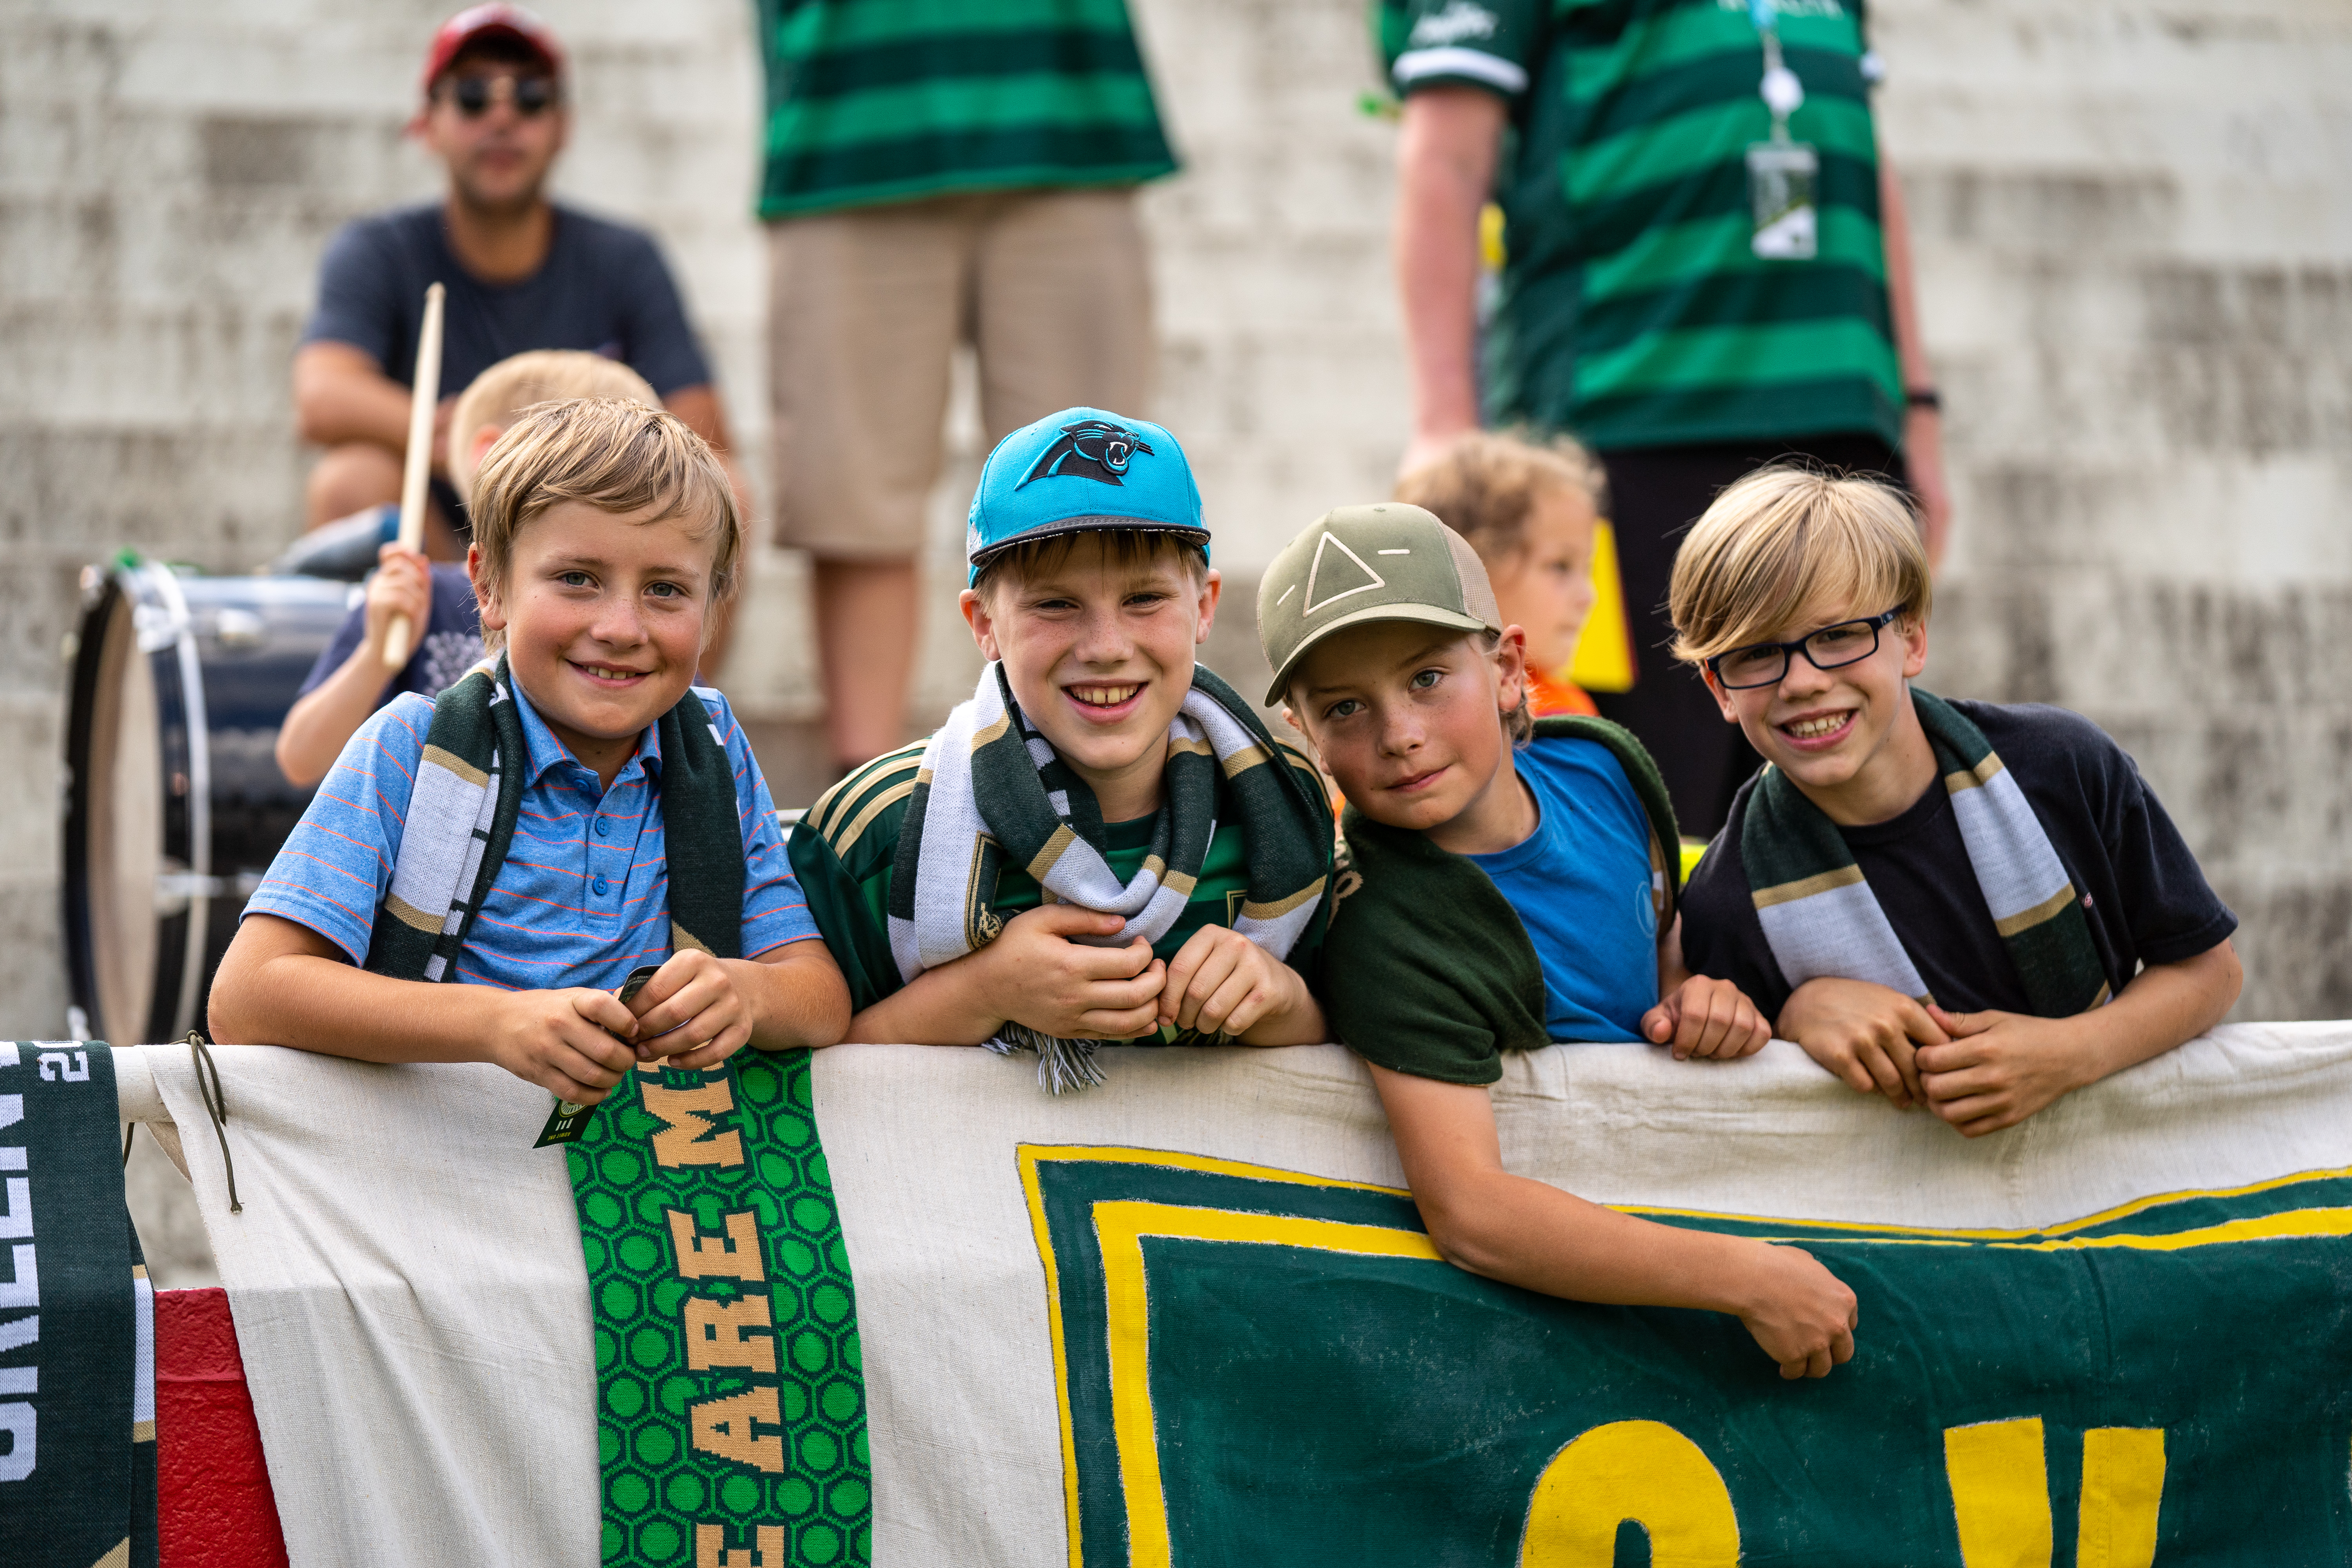 JOIN US FOR 'YOUTH SOCCER APPRECIATION NIGHT' THIS SATURDAY 6/29